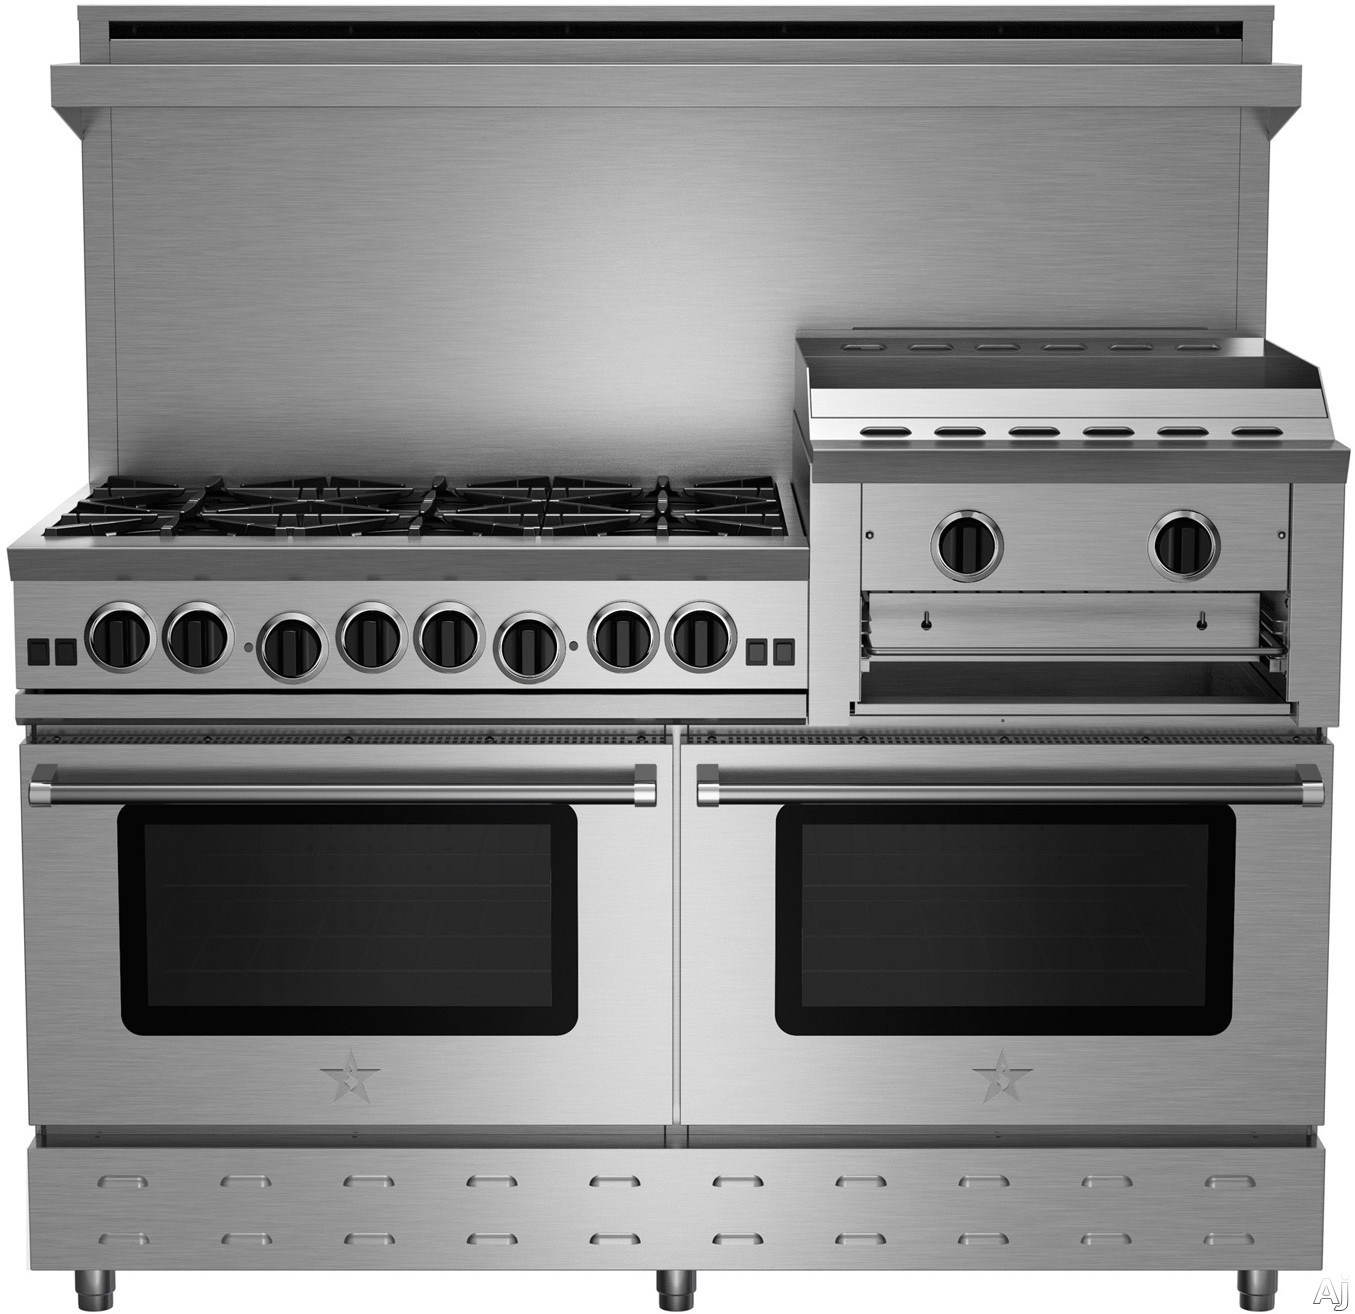 BlueStar Heritage Classic Series RNB606GHCV2 60 Inch Freestanding Gas Range with 6 Open Burners, 24 Inch Griddle/Broiler, UltraNova Burners, Precise Simmer Burner, Commercial Capacity Convection Oven, Gliding Oven Rack, 750 Color Options and Manual Clean